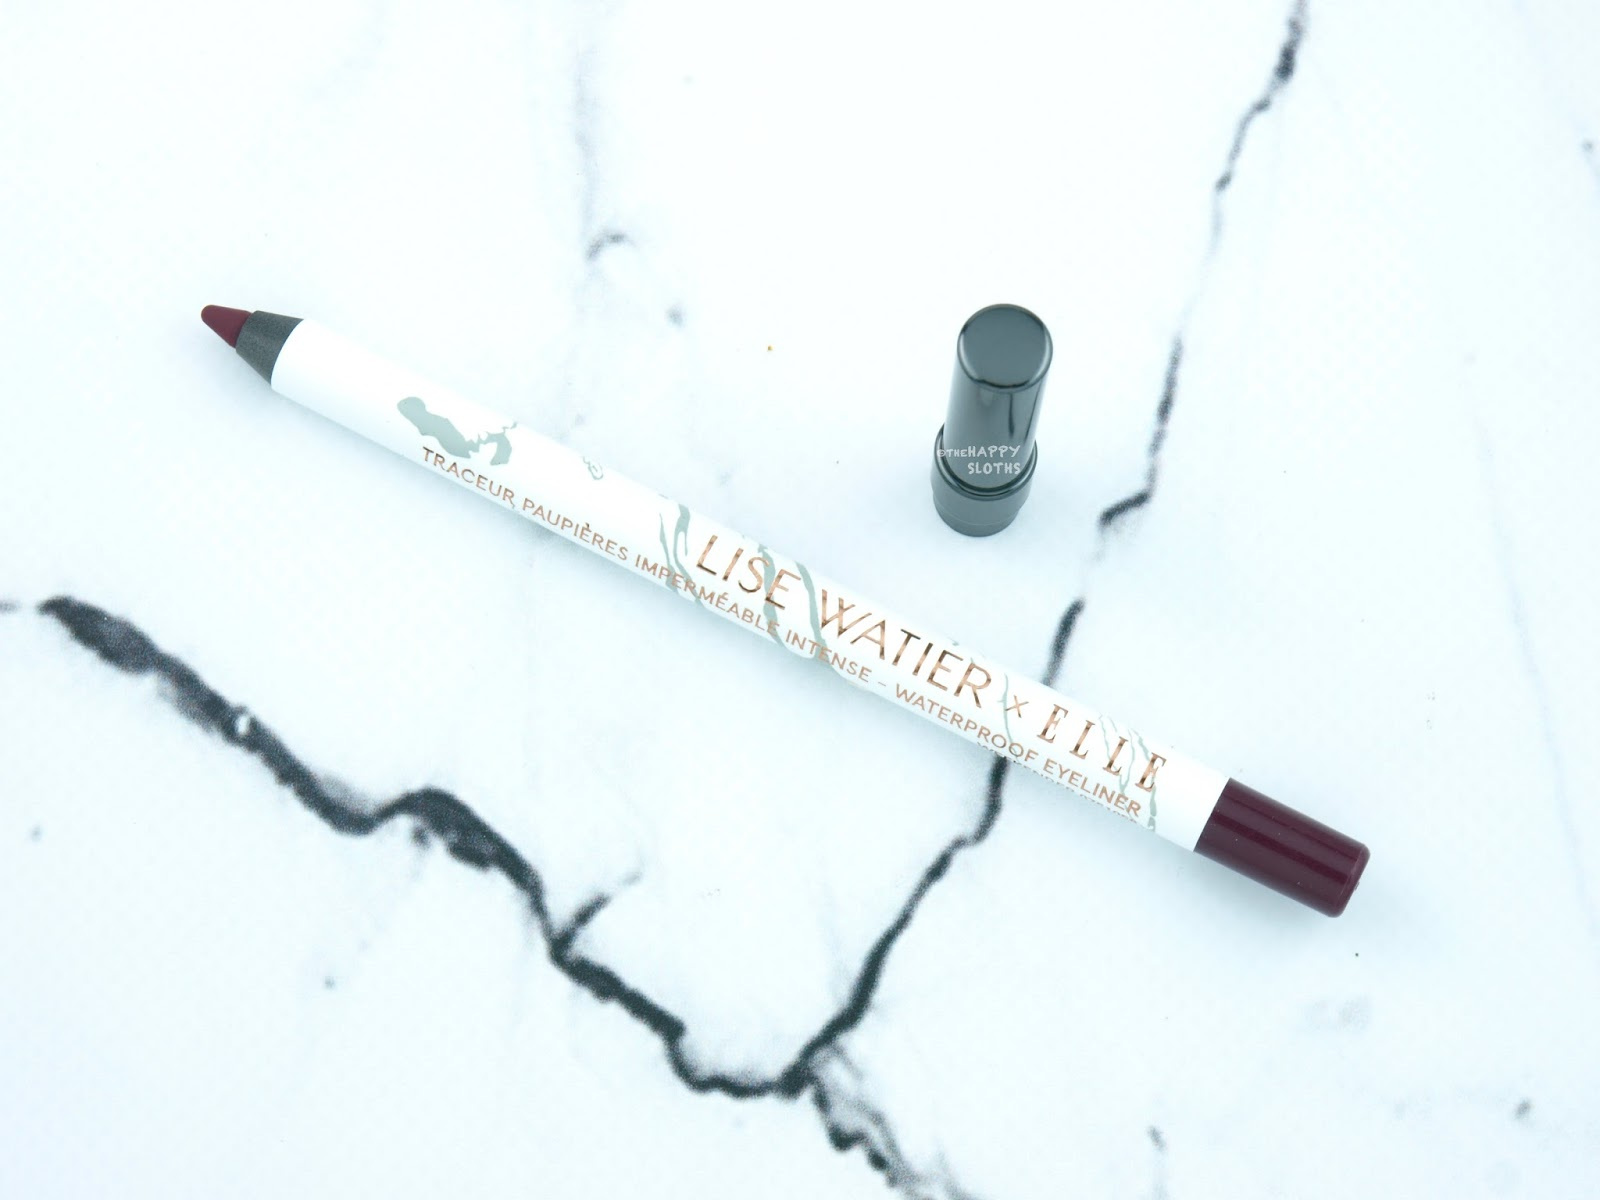 Lise Watier x ELLE Weekender Intense Waterproof Eyeliner: Review and Swatches